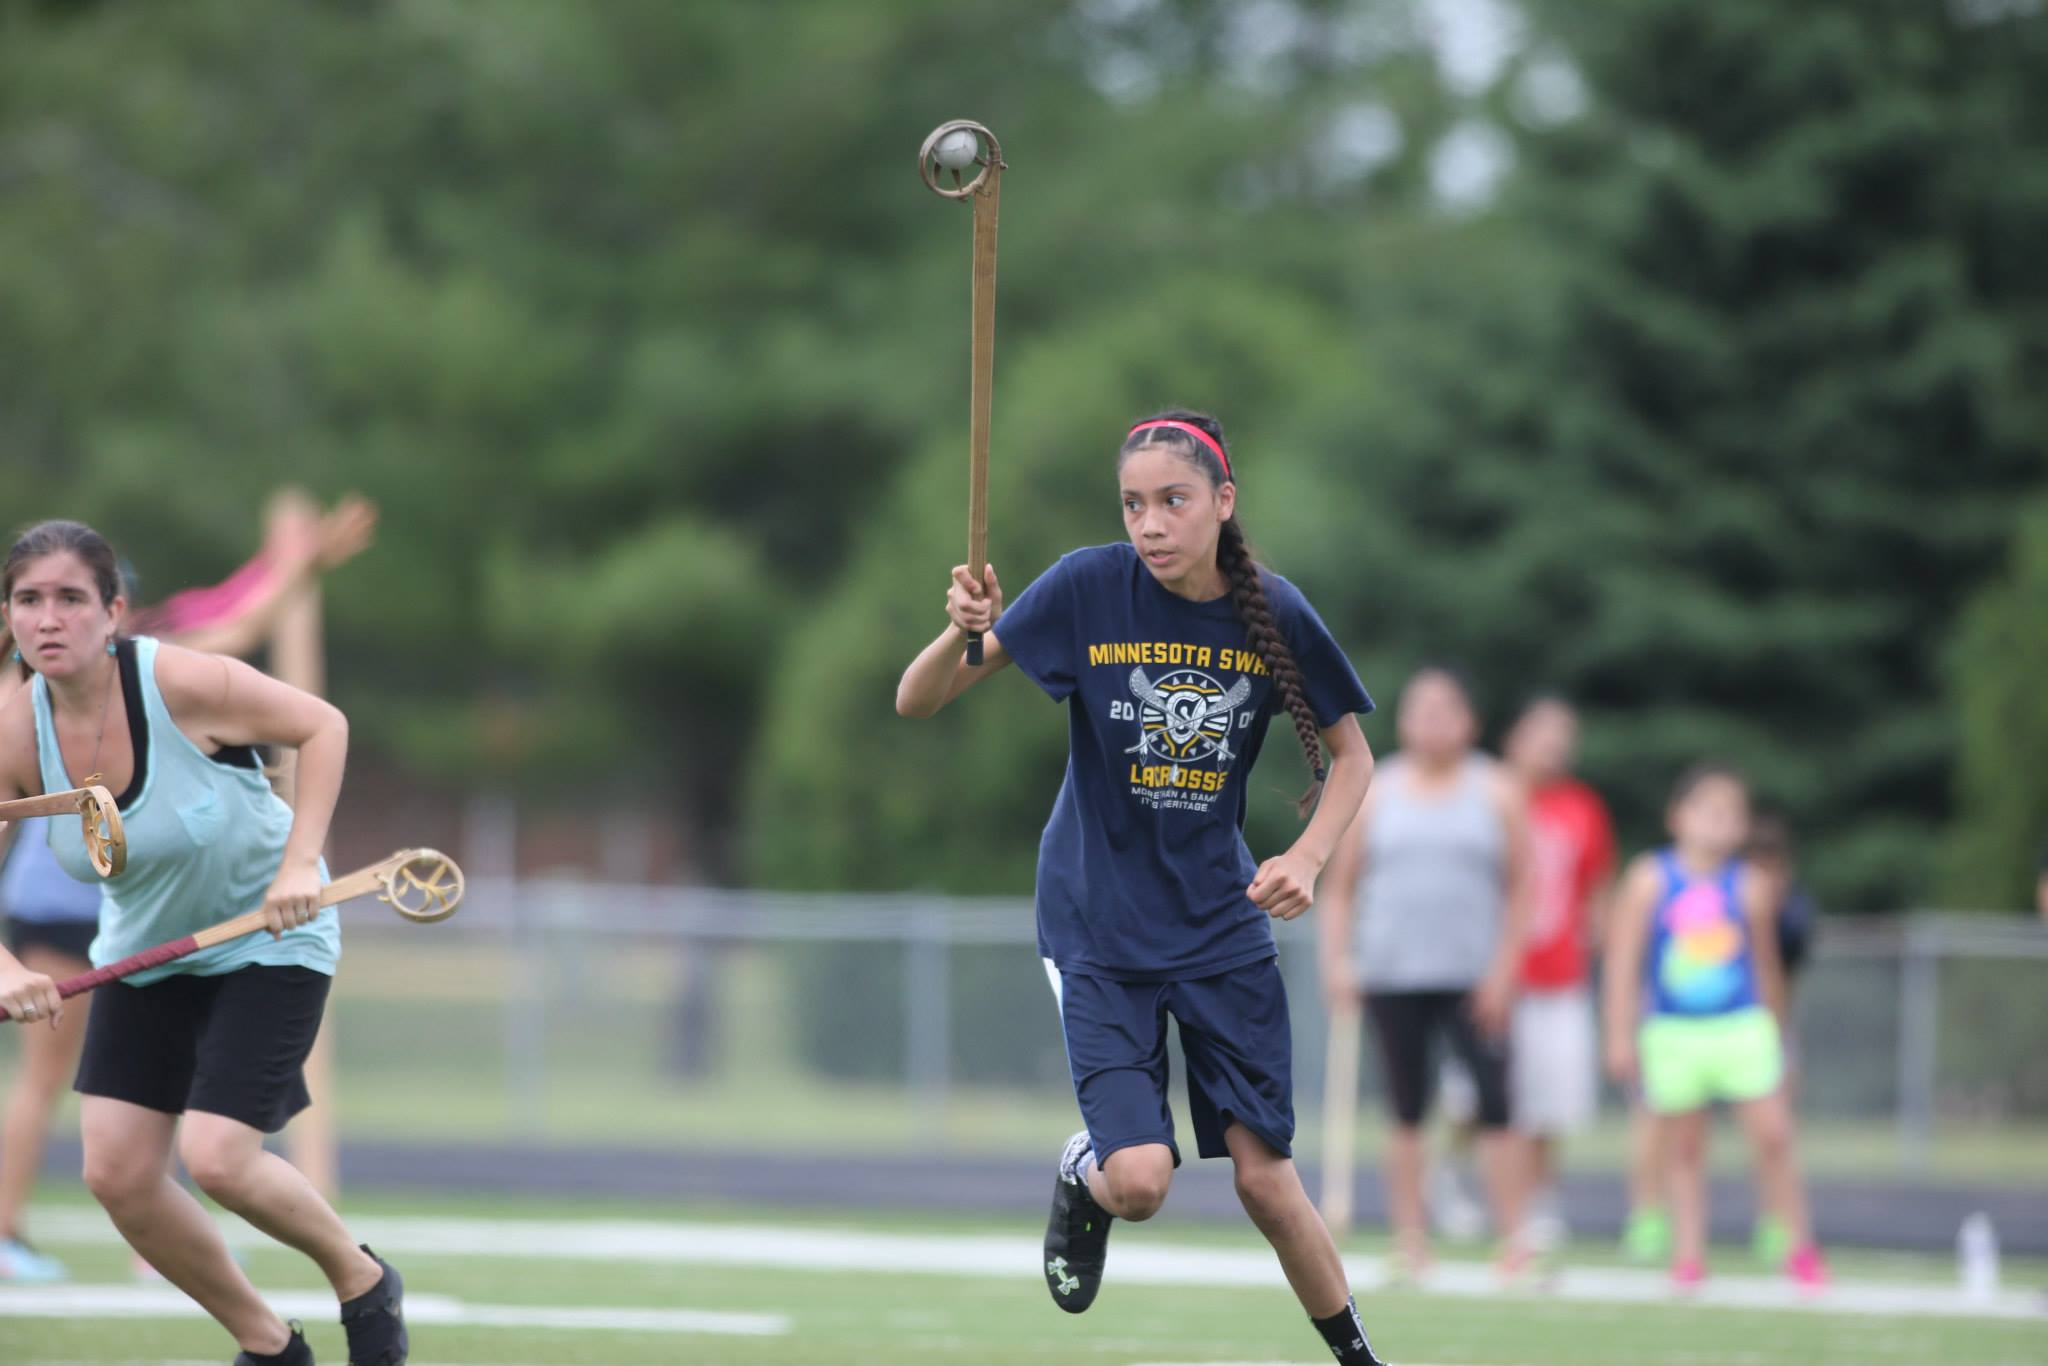 Eighth grader Nina Polk competes in the 215 wooden stick tournament. Nina and her mother, Dyani Whitehawk, are members of the adult women's team.